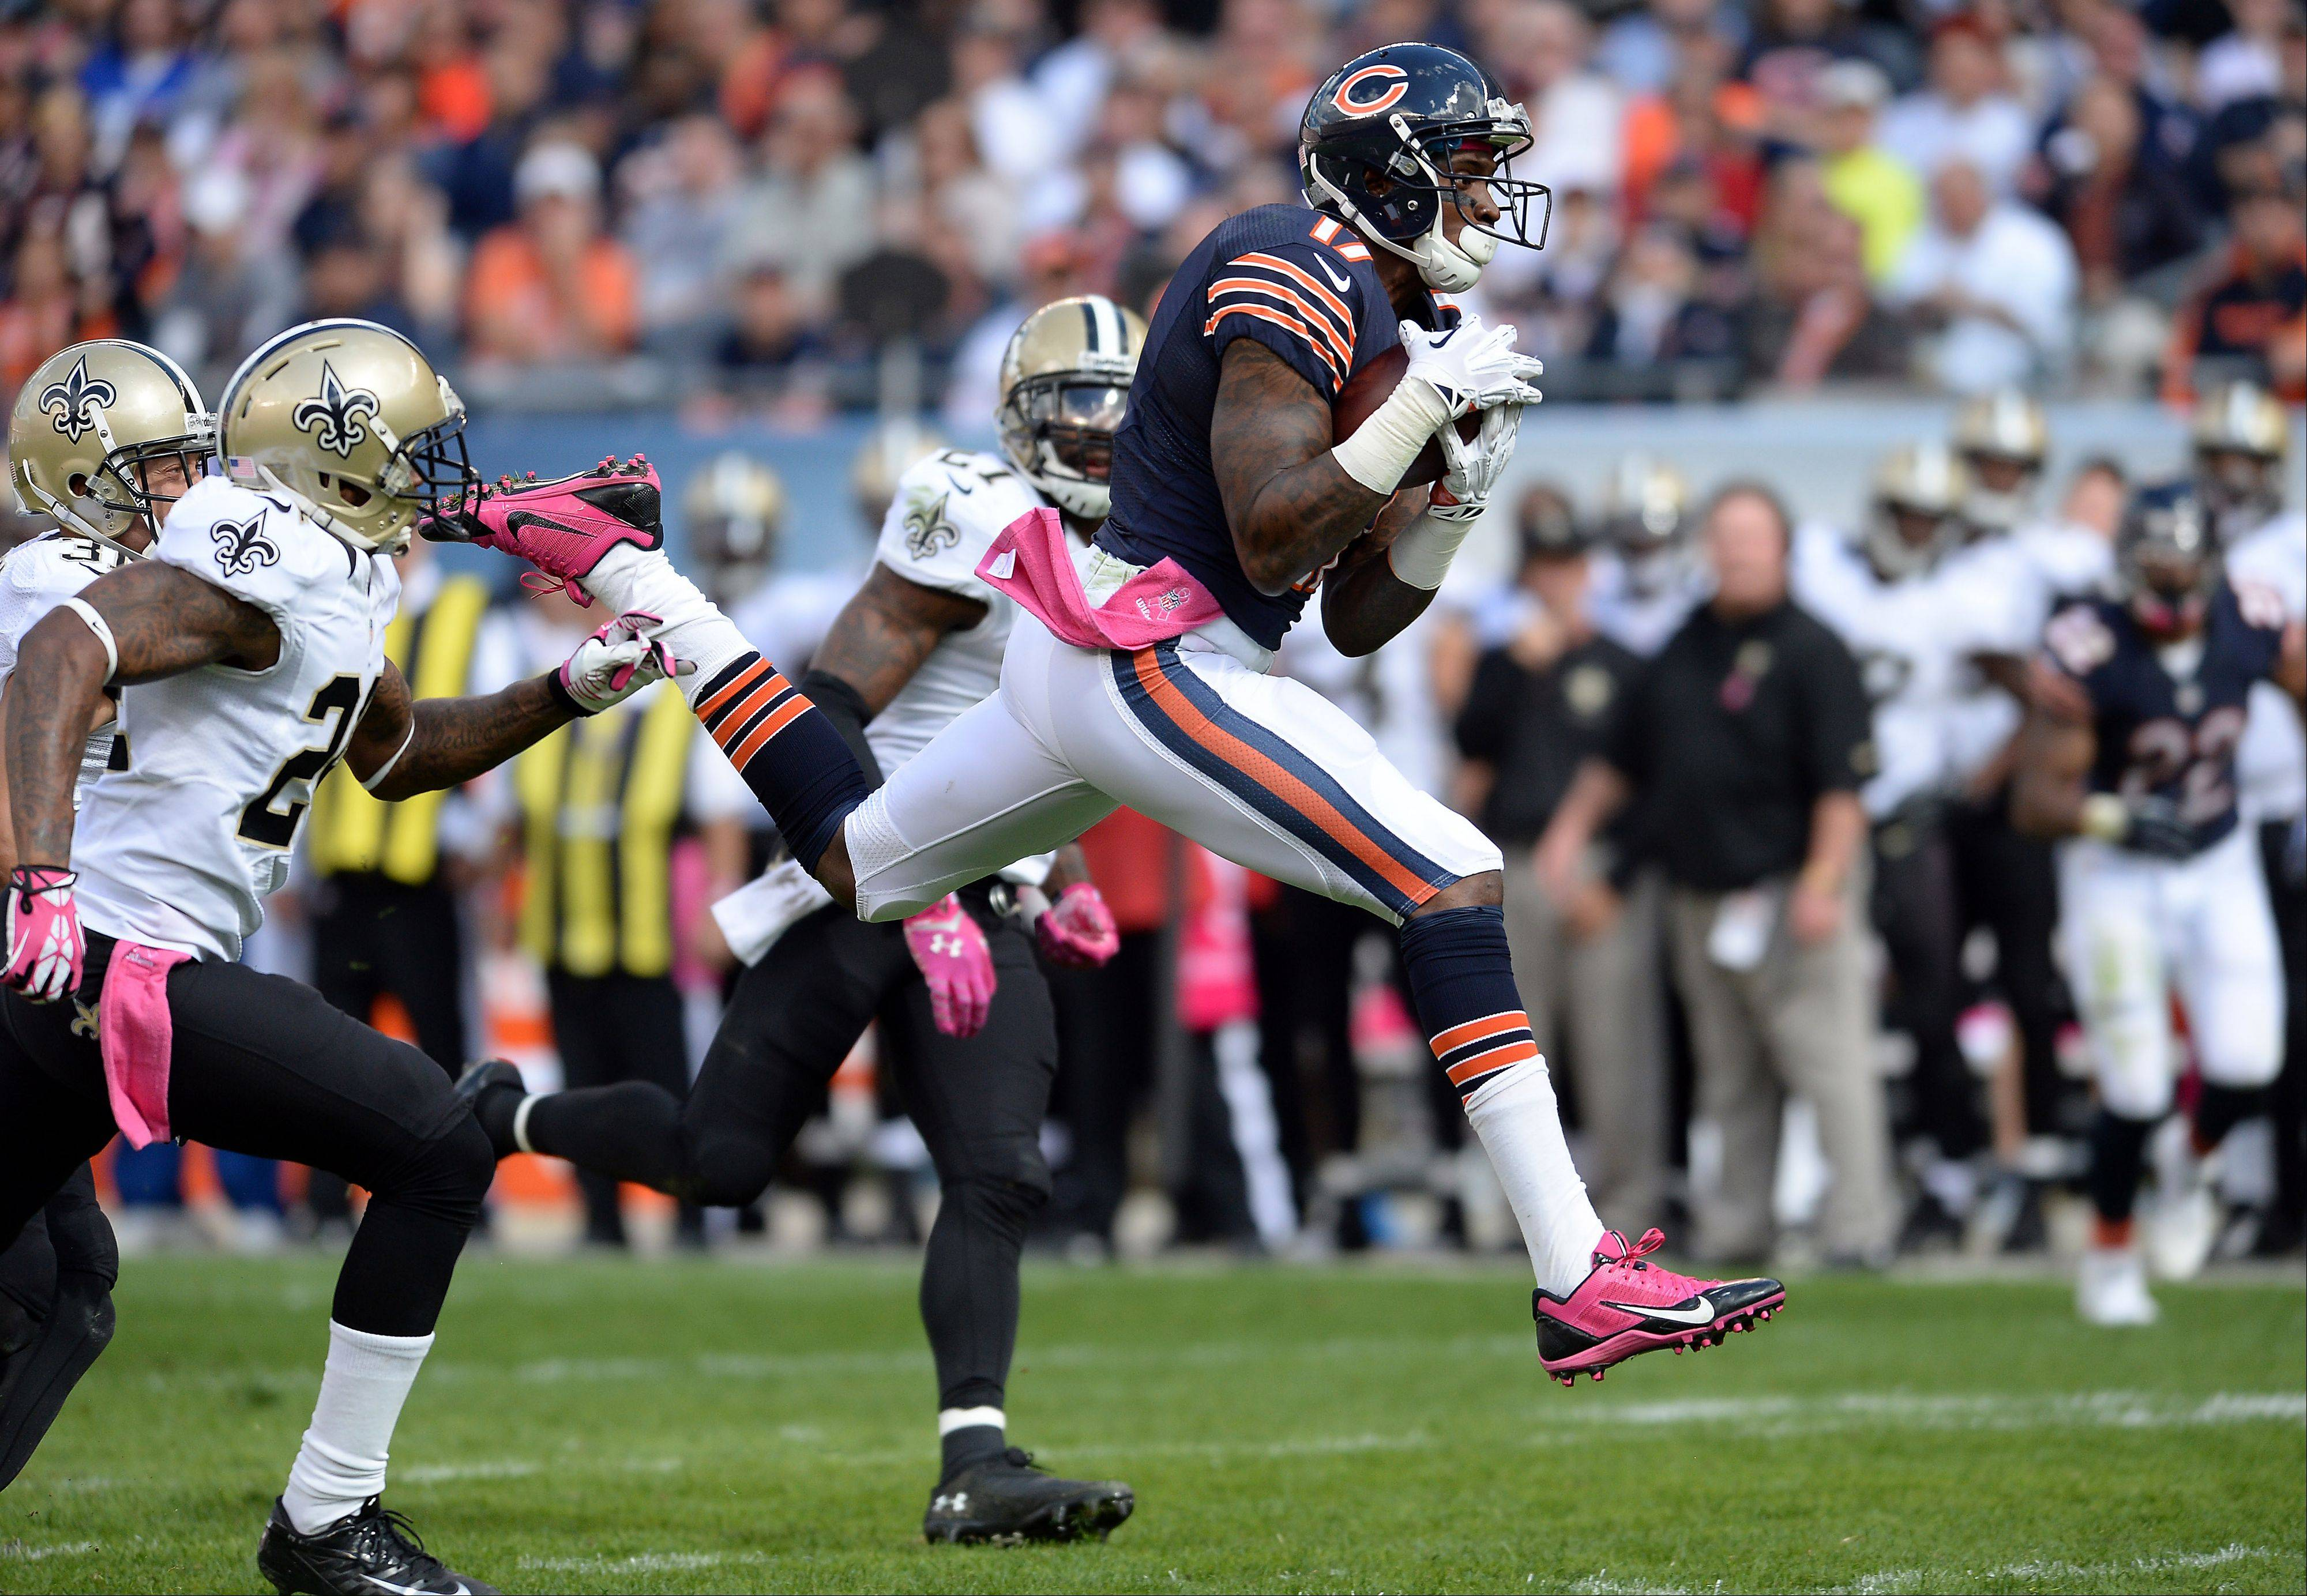 Alshon Jeffery set the Bears' single-game record by piling up 218 receiving yards in Sunday's loss to the New Orleans Saints.